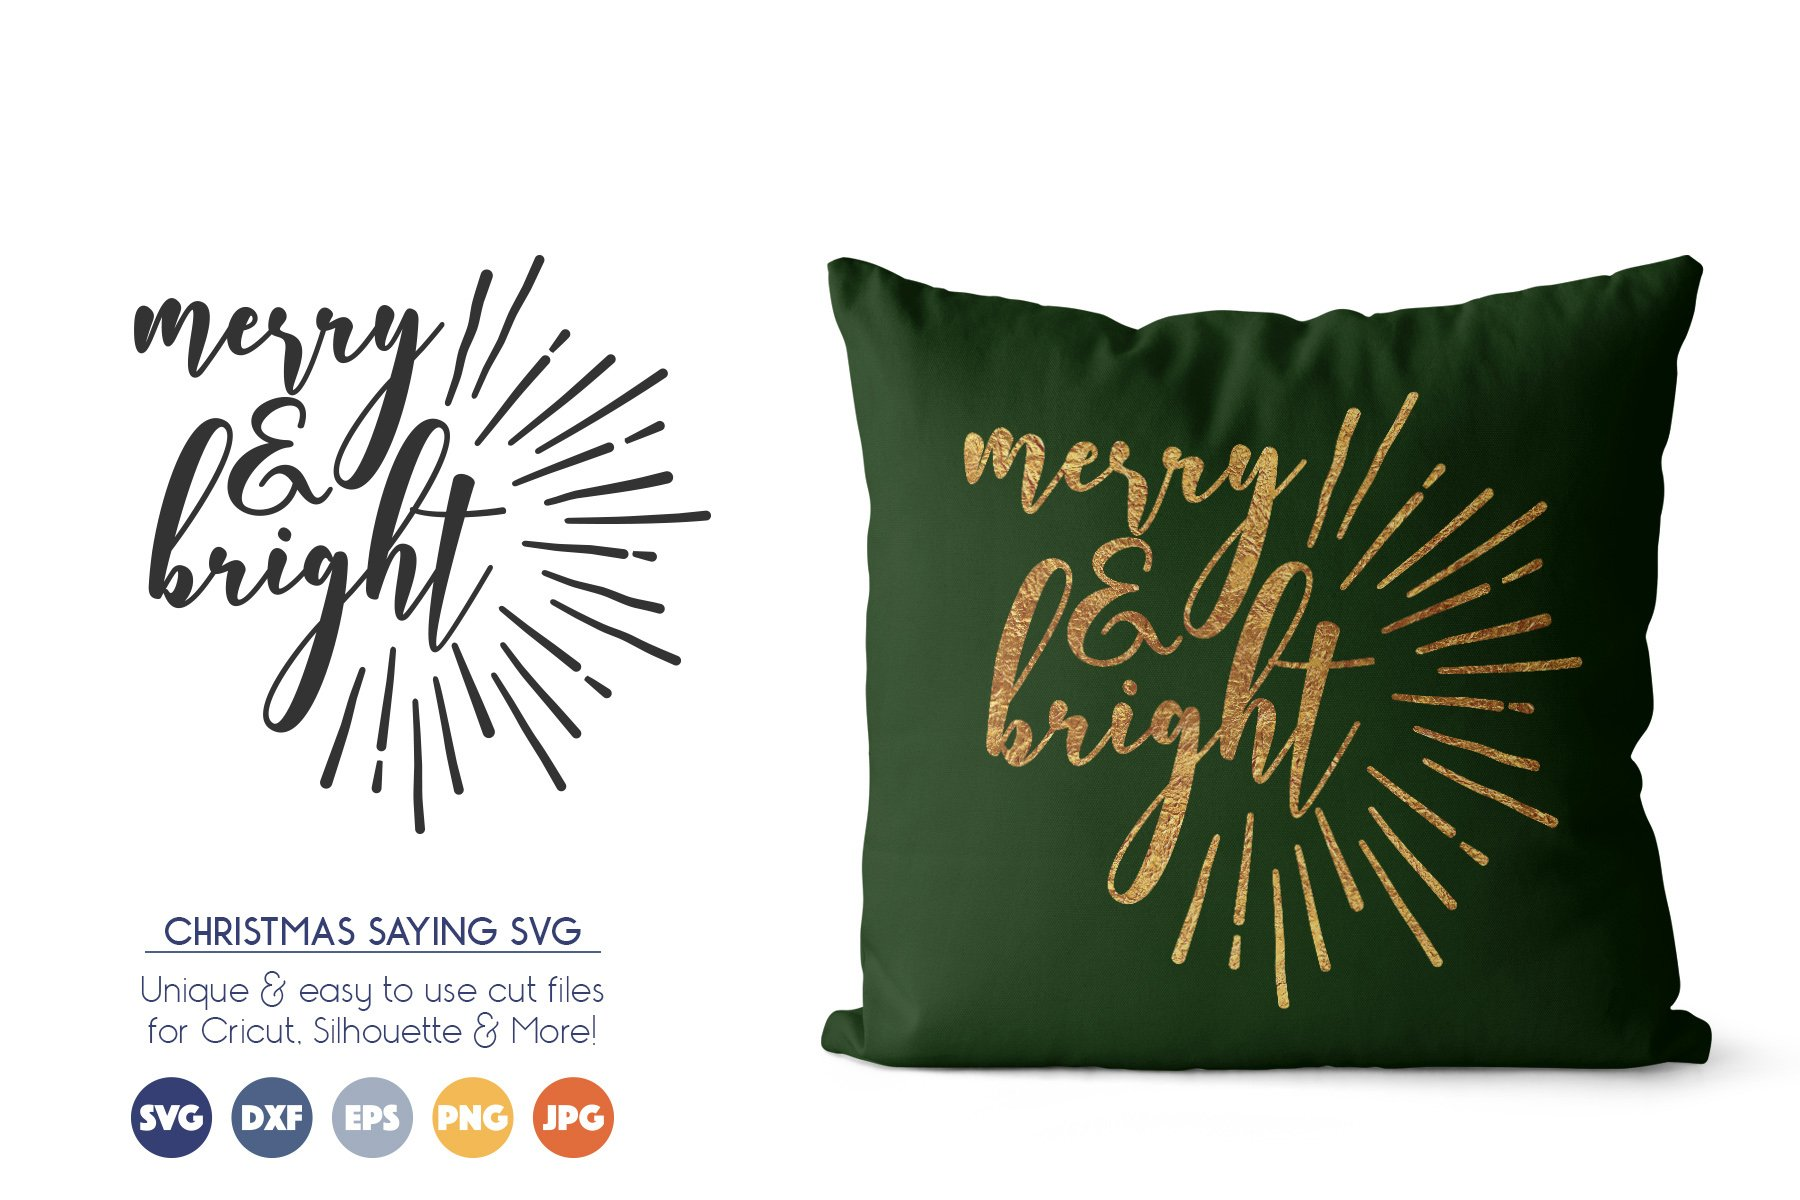 Merry and Bright - Christmas Saying SVG Cut Files example image 1